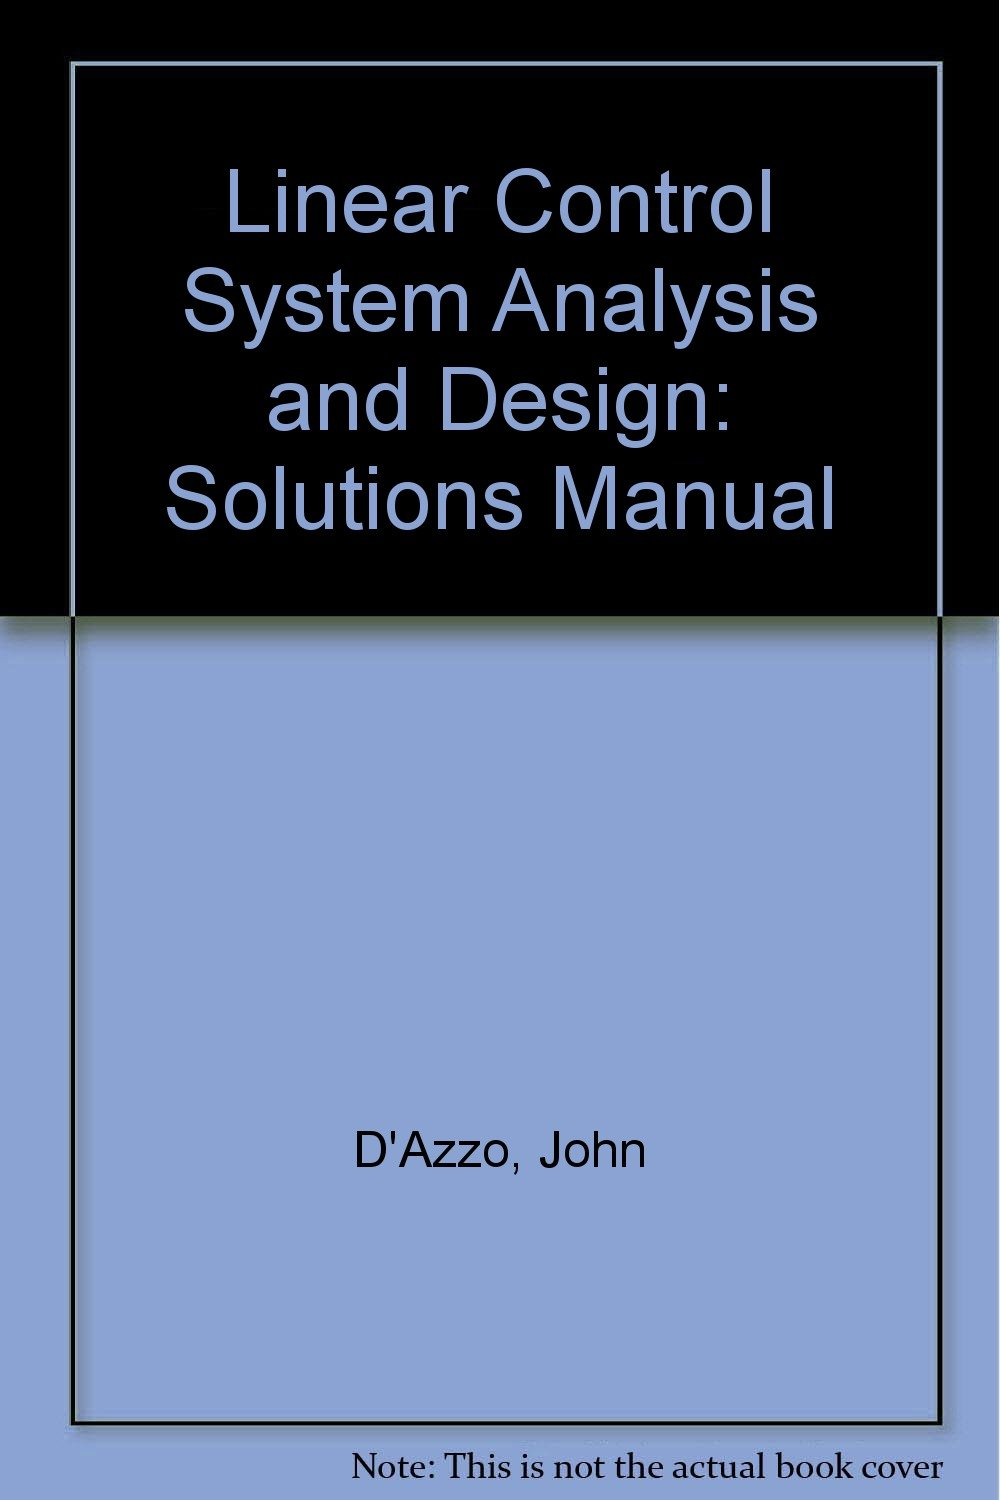 linear control system analysis and design solutions manual john d rh amazon com power system analysis and design solution manual digital control system analysis and design solution manual pdf